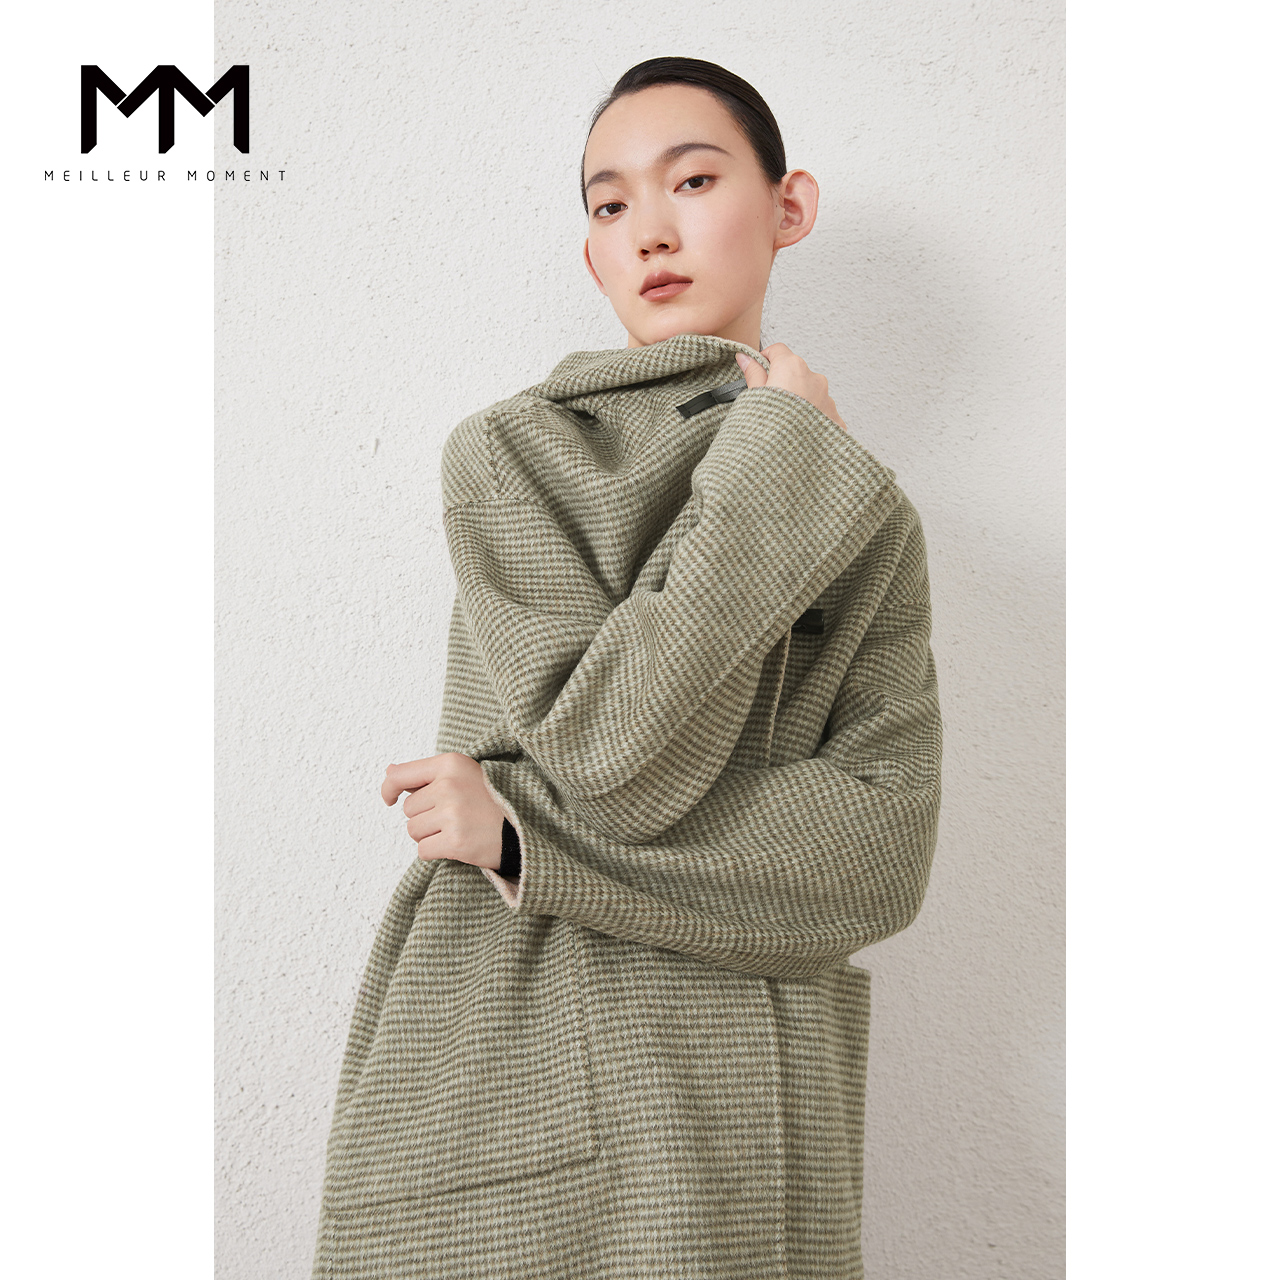 Shopping malls the same MM McIlroy 2020 winter new plaid double-sided coat wool coat women 5BA170461